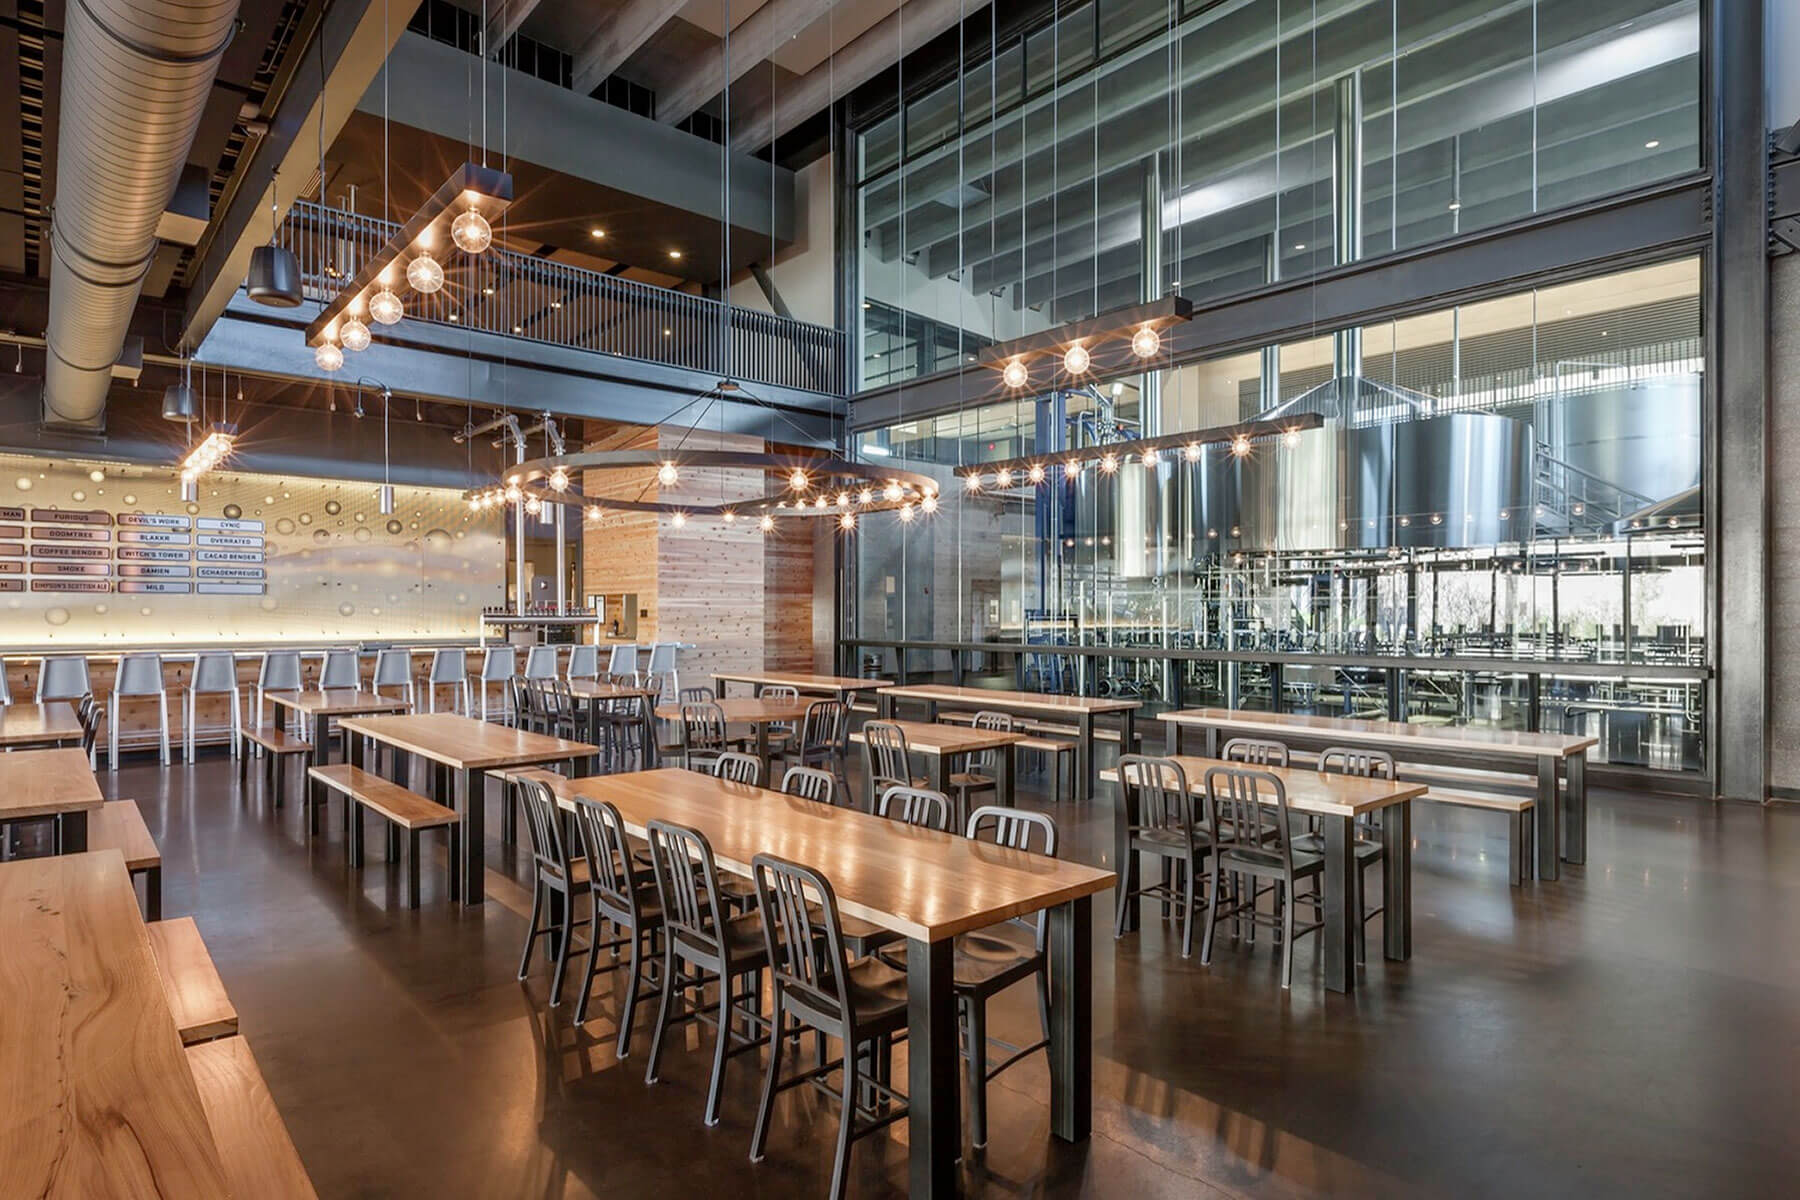 Inside the taproom of Surly Brewing Co. in Minneapolis, Minnesota